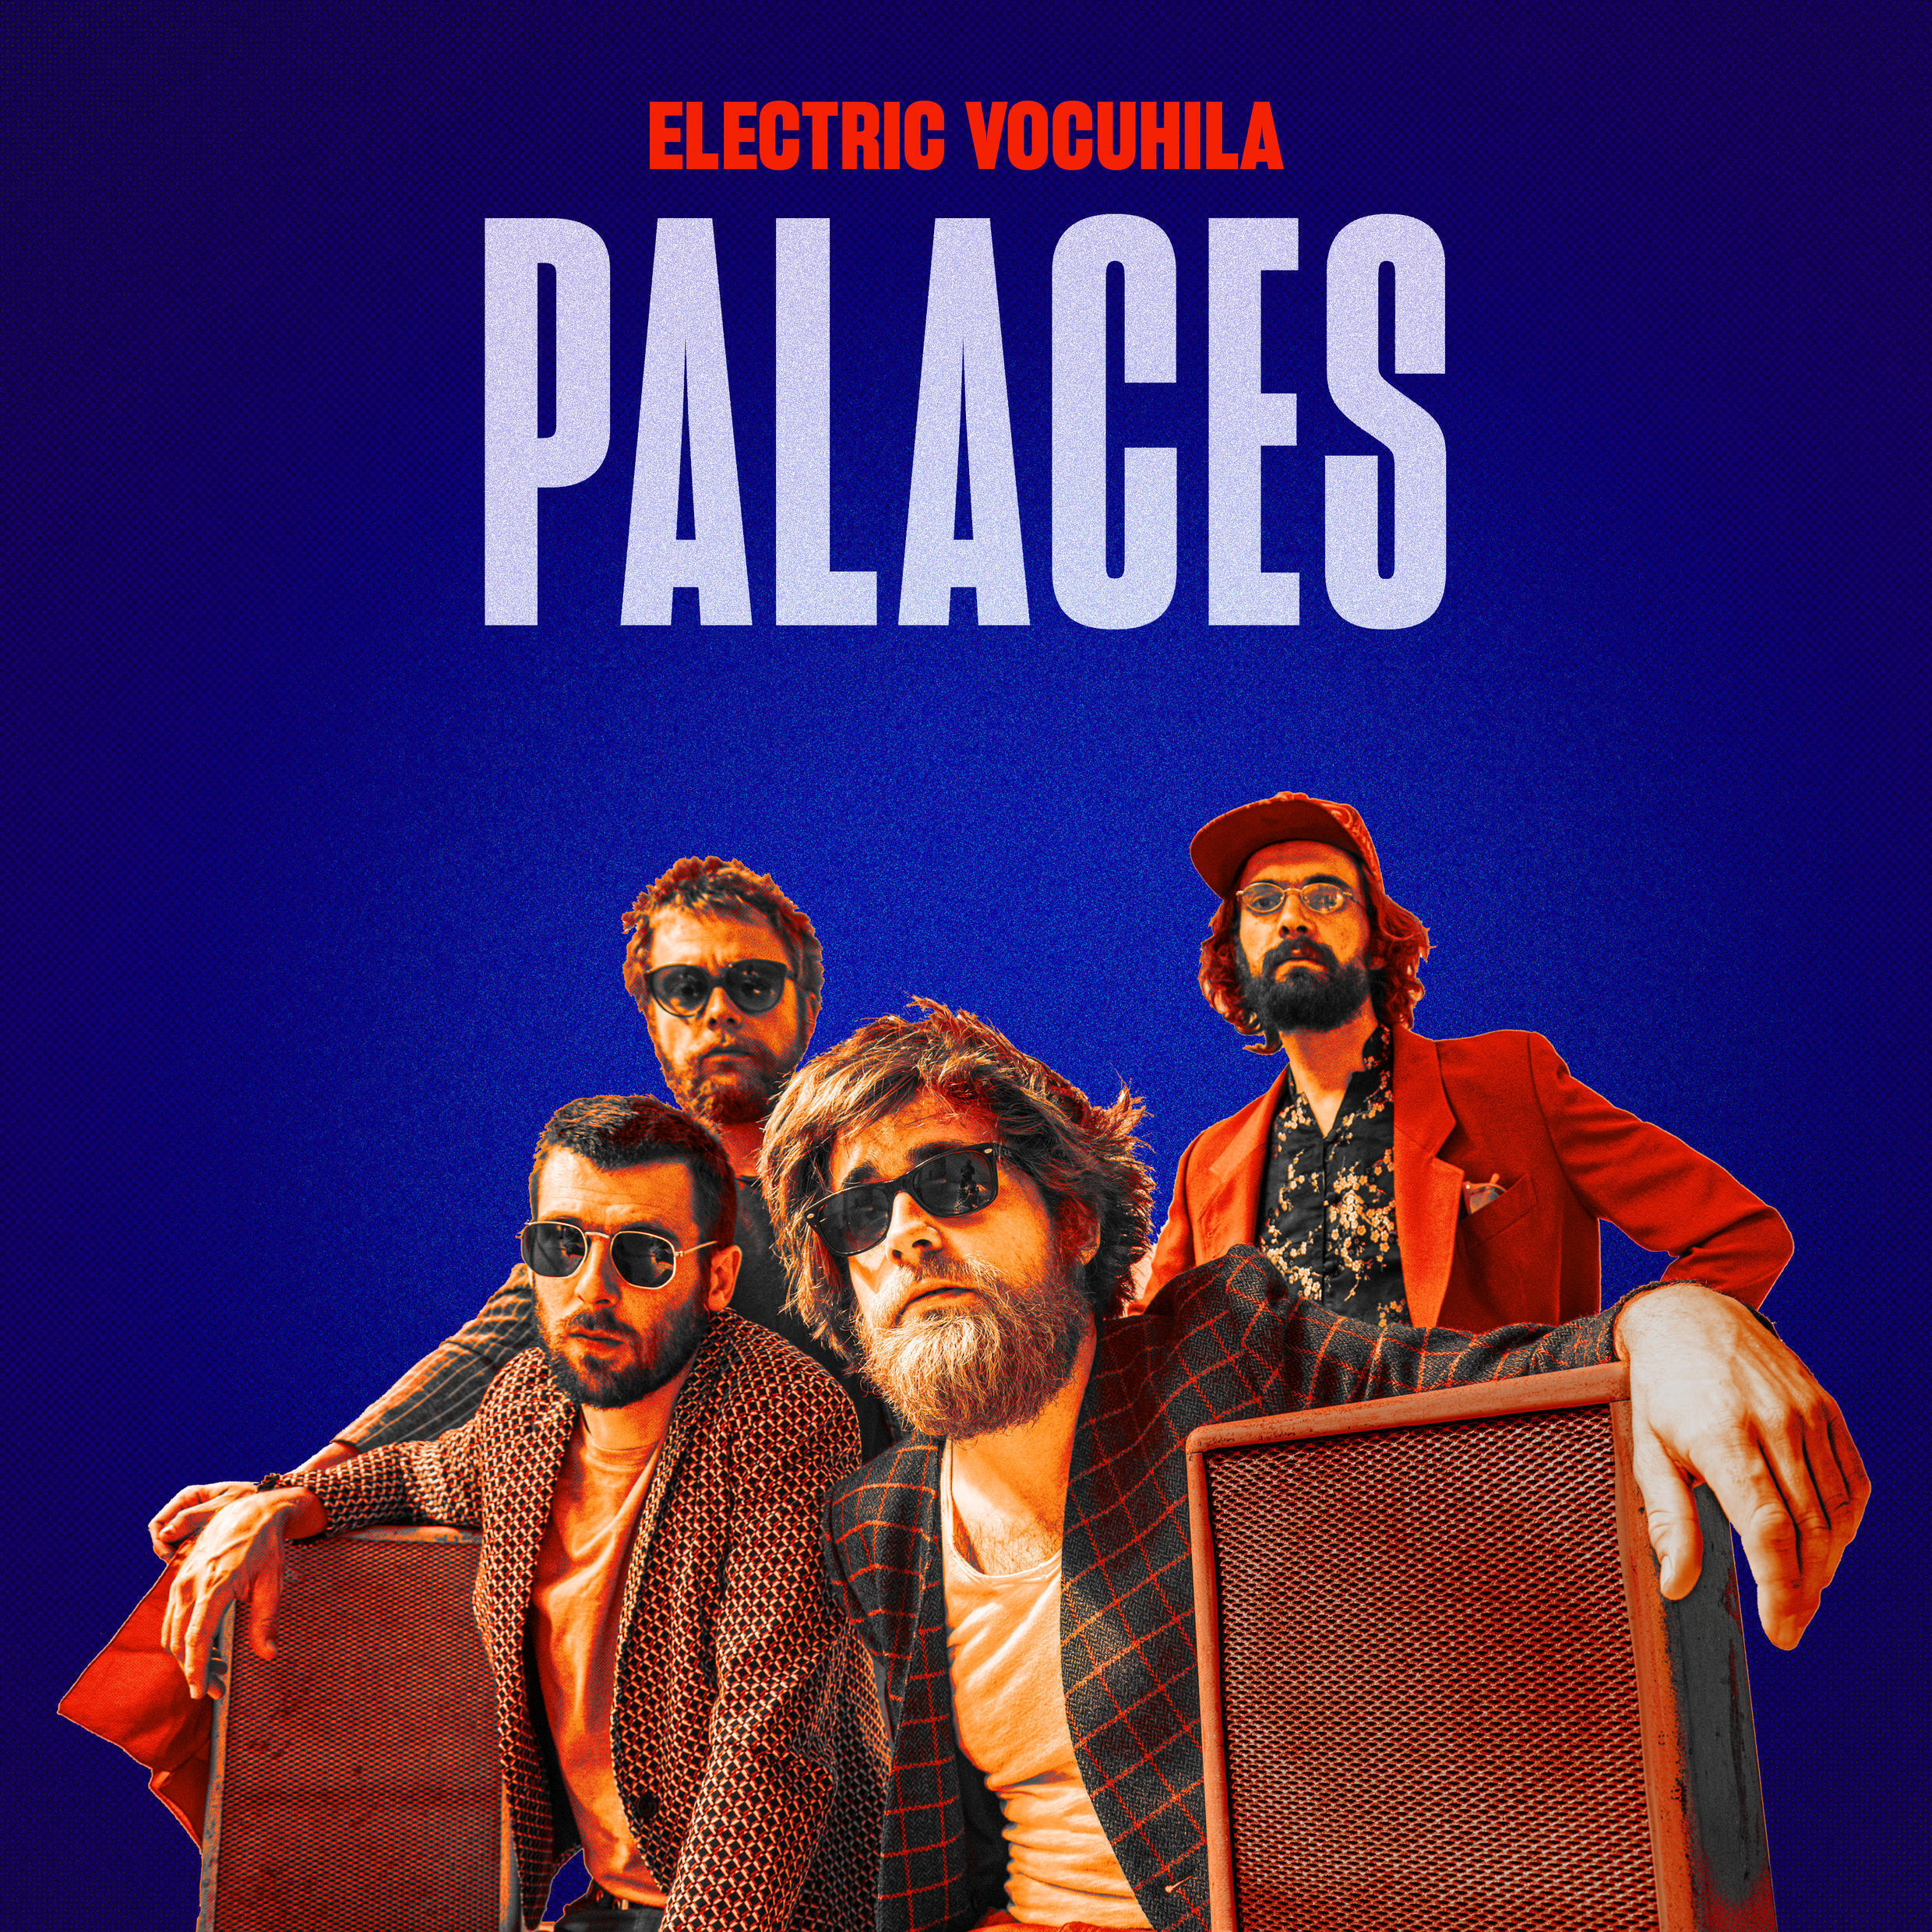 """Electric Vocuhila, a French quartet based in Tours, released their third album """"Palaces"""" on 21 August 2020"""